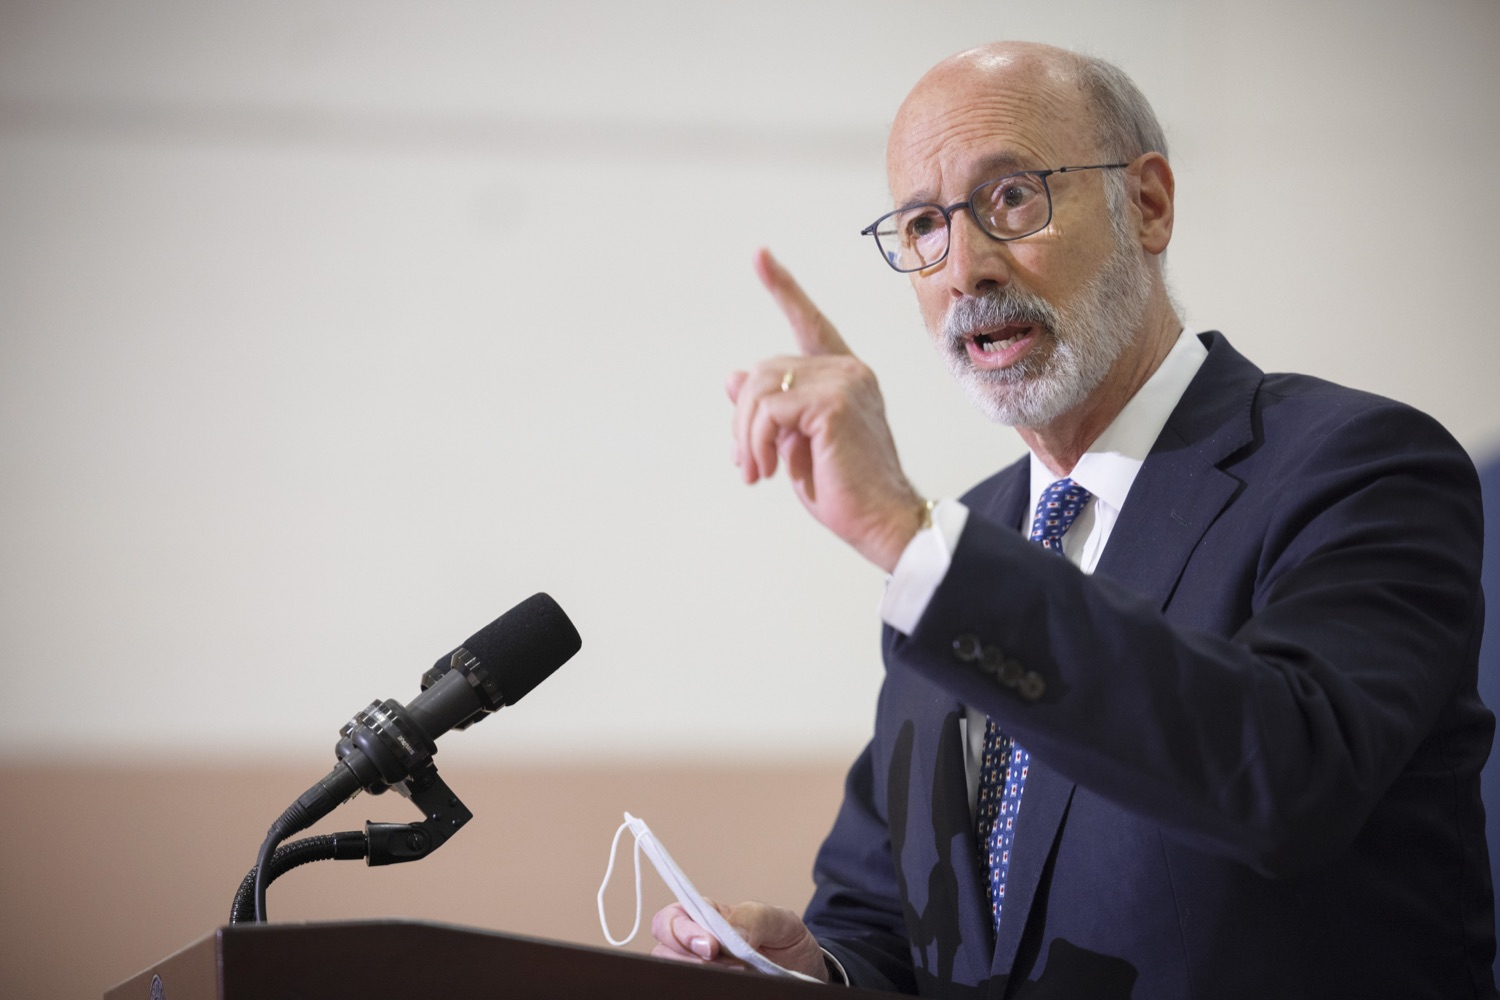 """<a href=""""https://filesource.wostreaming.net/commonwealthofpa/photo/20078_gov_gunviolence_dz_002.jpg"""" target=""""_blank"""">⇣Download Photo<br></a>Pennsylvania Governor Tom Wolf speaking with the press.  Governor Tom Wolf today joined state lawmakers to remind communities and organizations that $24 million in state funding is available to address community violence.  Philadelphia, PA - September 23, 2021"""